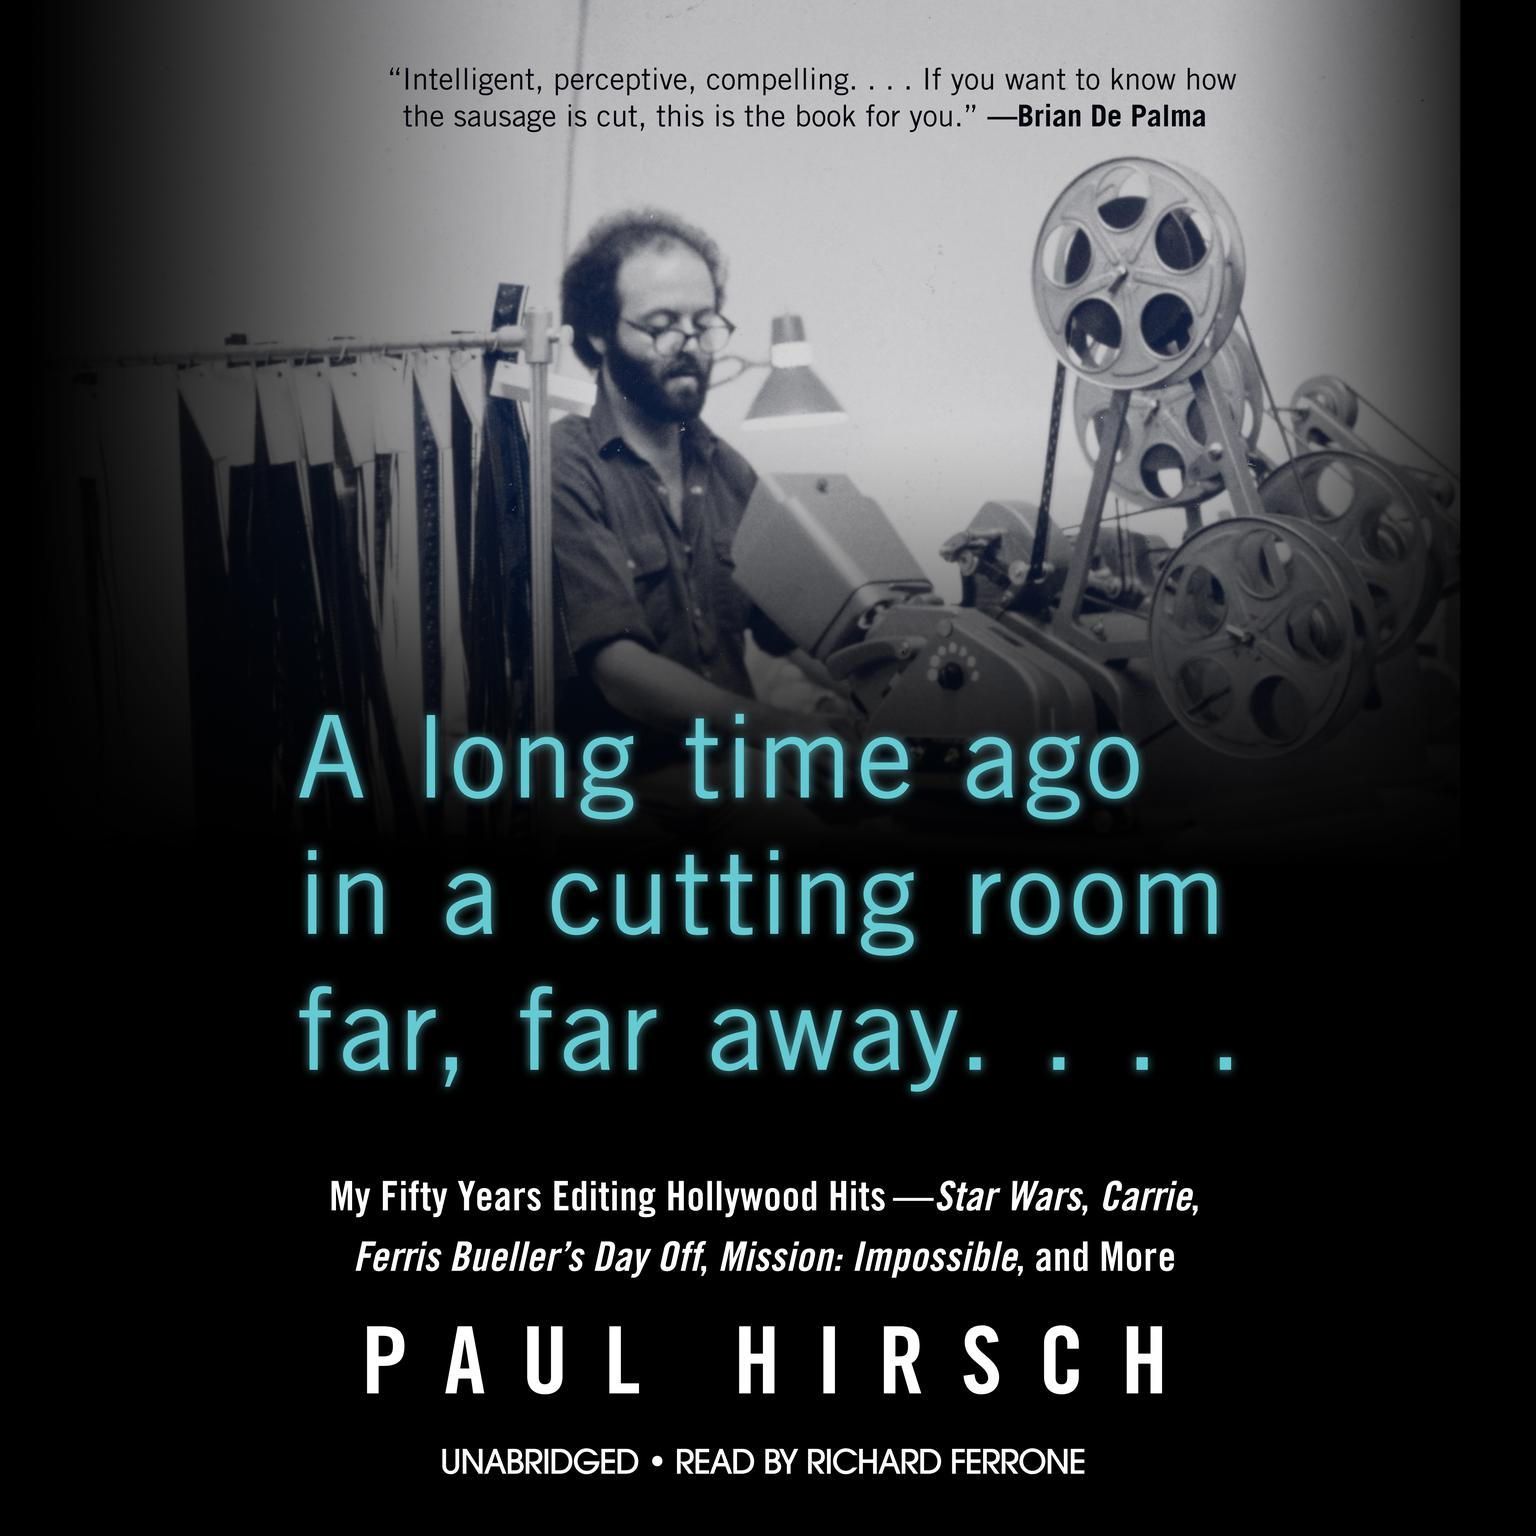 A Long Time Ago in a Cutting Room Far, Far Away: My Fifty Years Editing Hollywood Hits—Star Wars, Carrie, Ferris Bueller's Day Off, Mission: Impossible, and More Audiobook, by Paul Hirsch